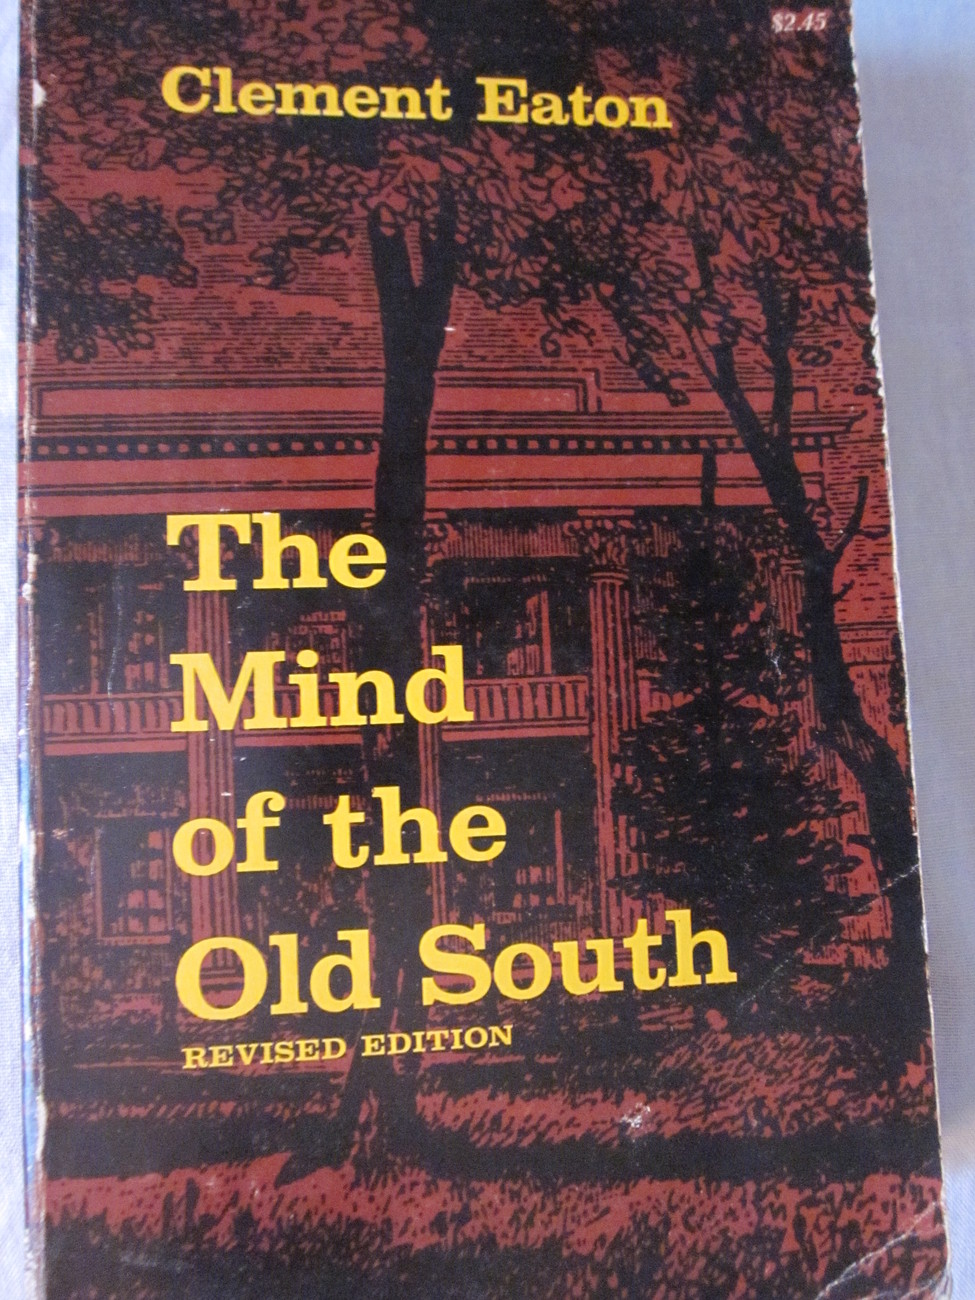 The Mind Of The Old South by Clement Eaton Revised 1967